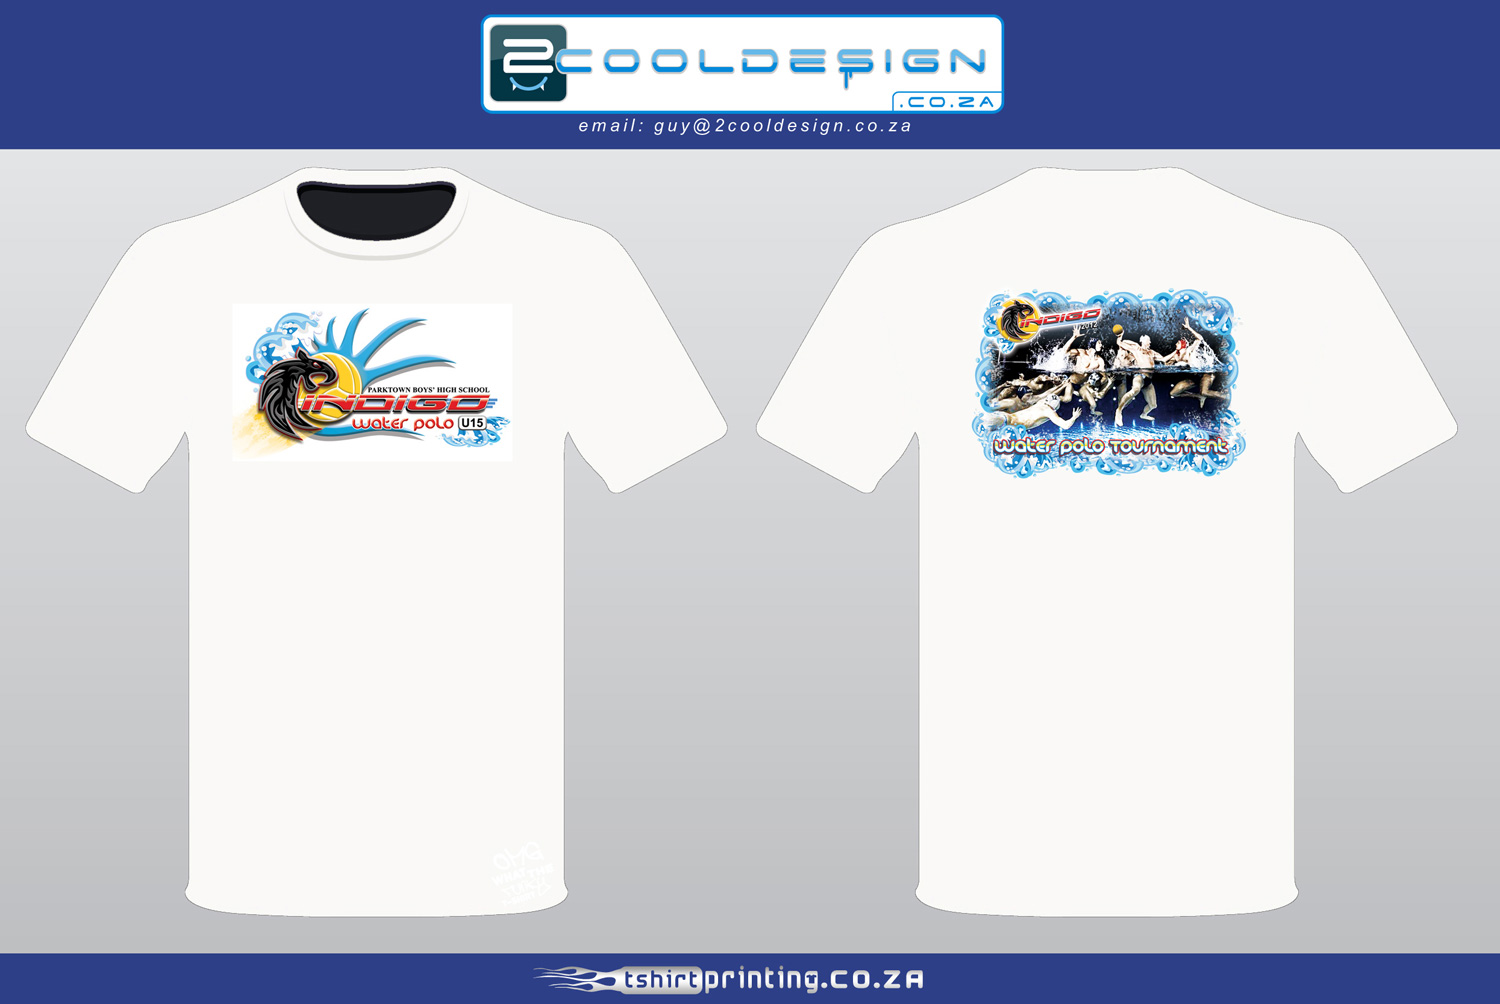 The coolest t-shirt printing company in South Africa | tshirt printing